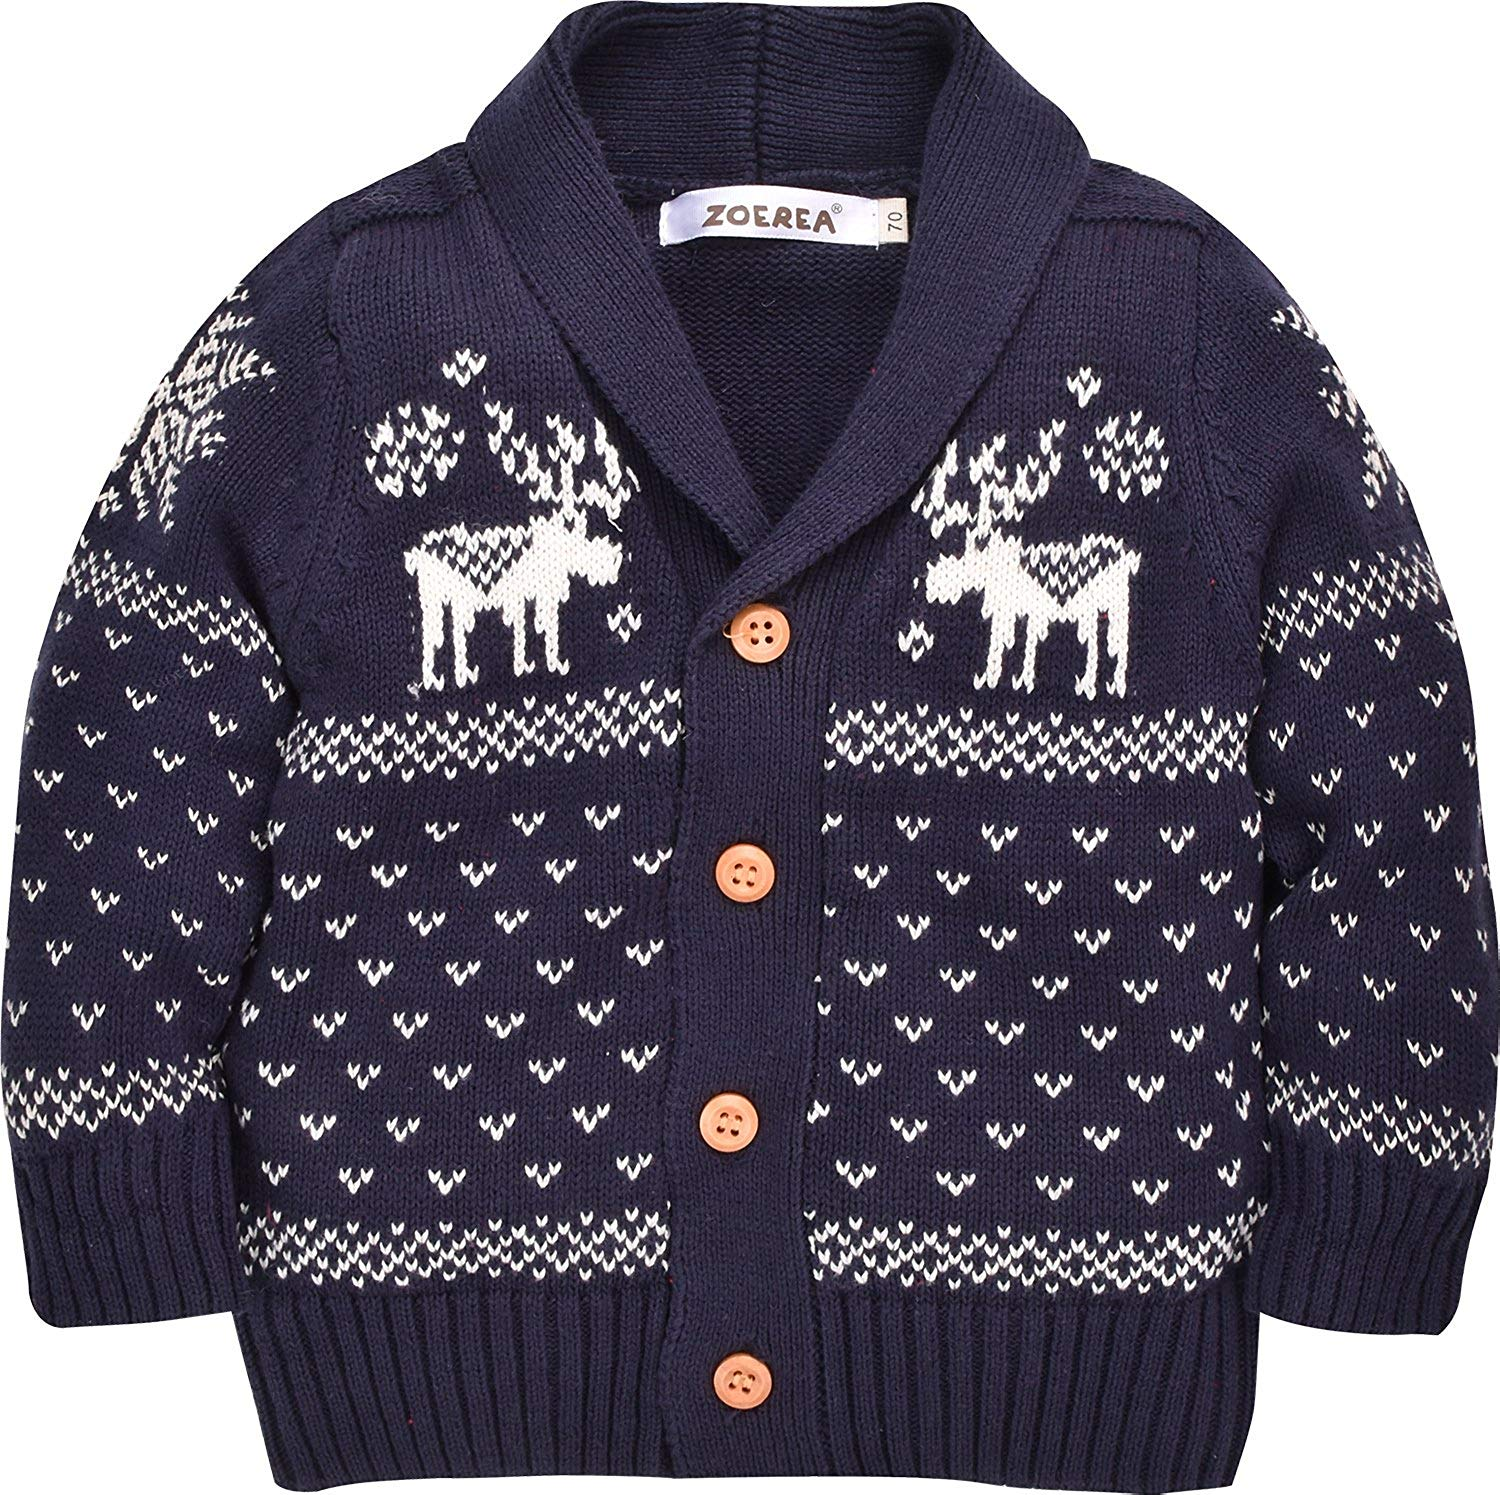 Unisex Baby Cotton Coat Deer Christmas Cardigan Sweater